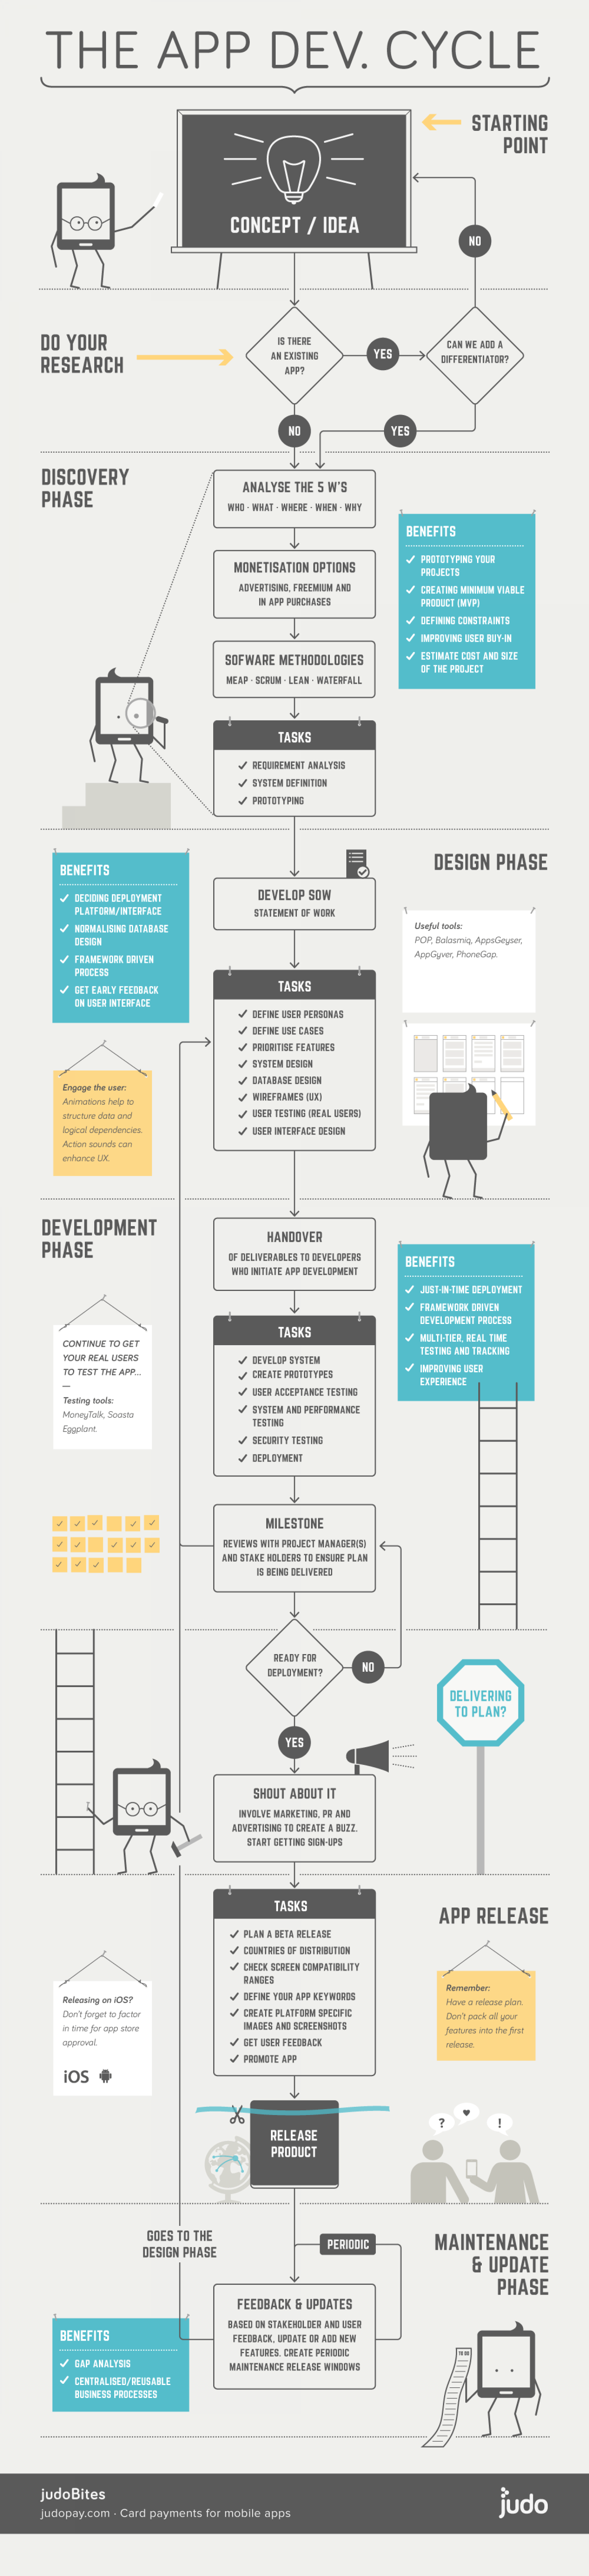 The Mobile App Development Cycle for iOS & Android Infographic